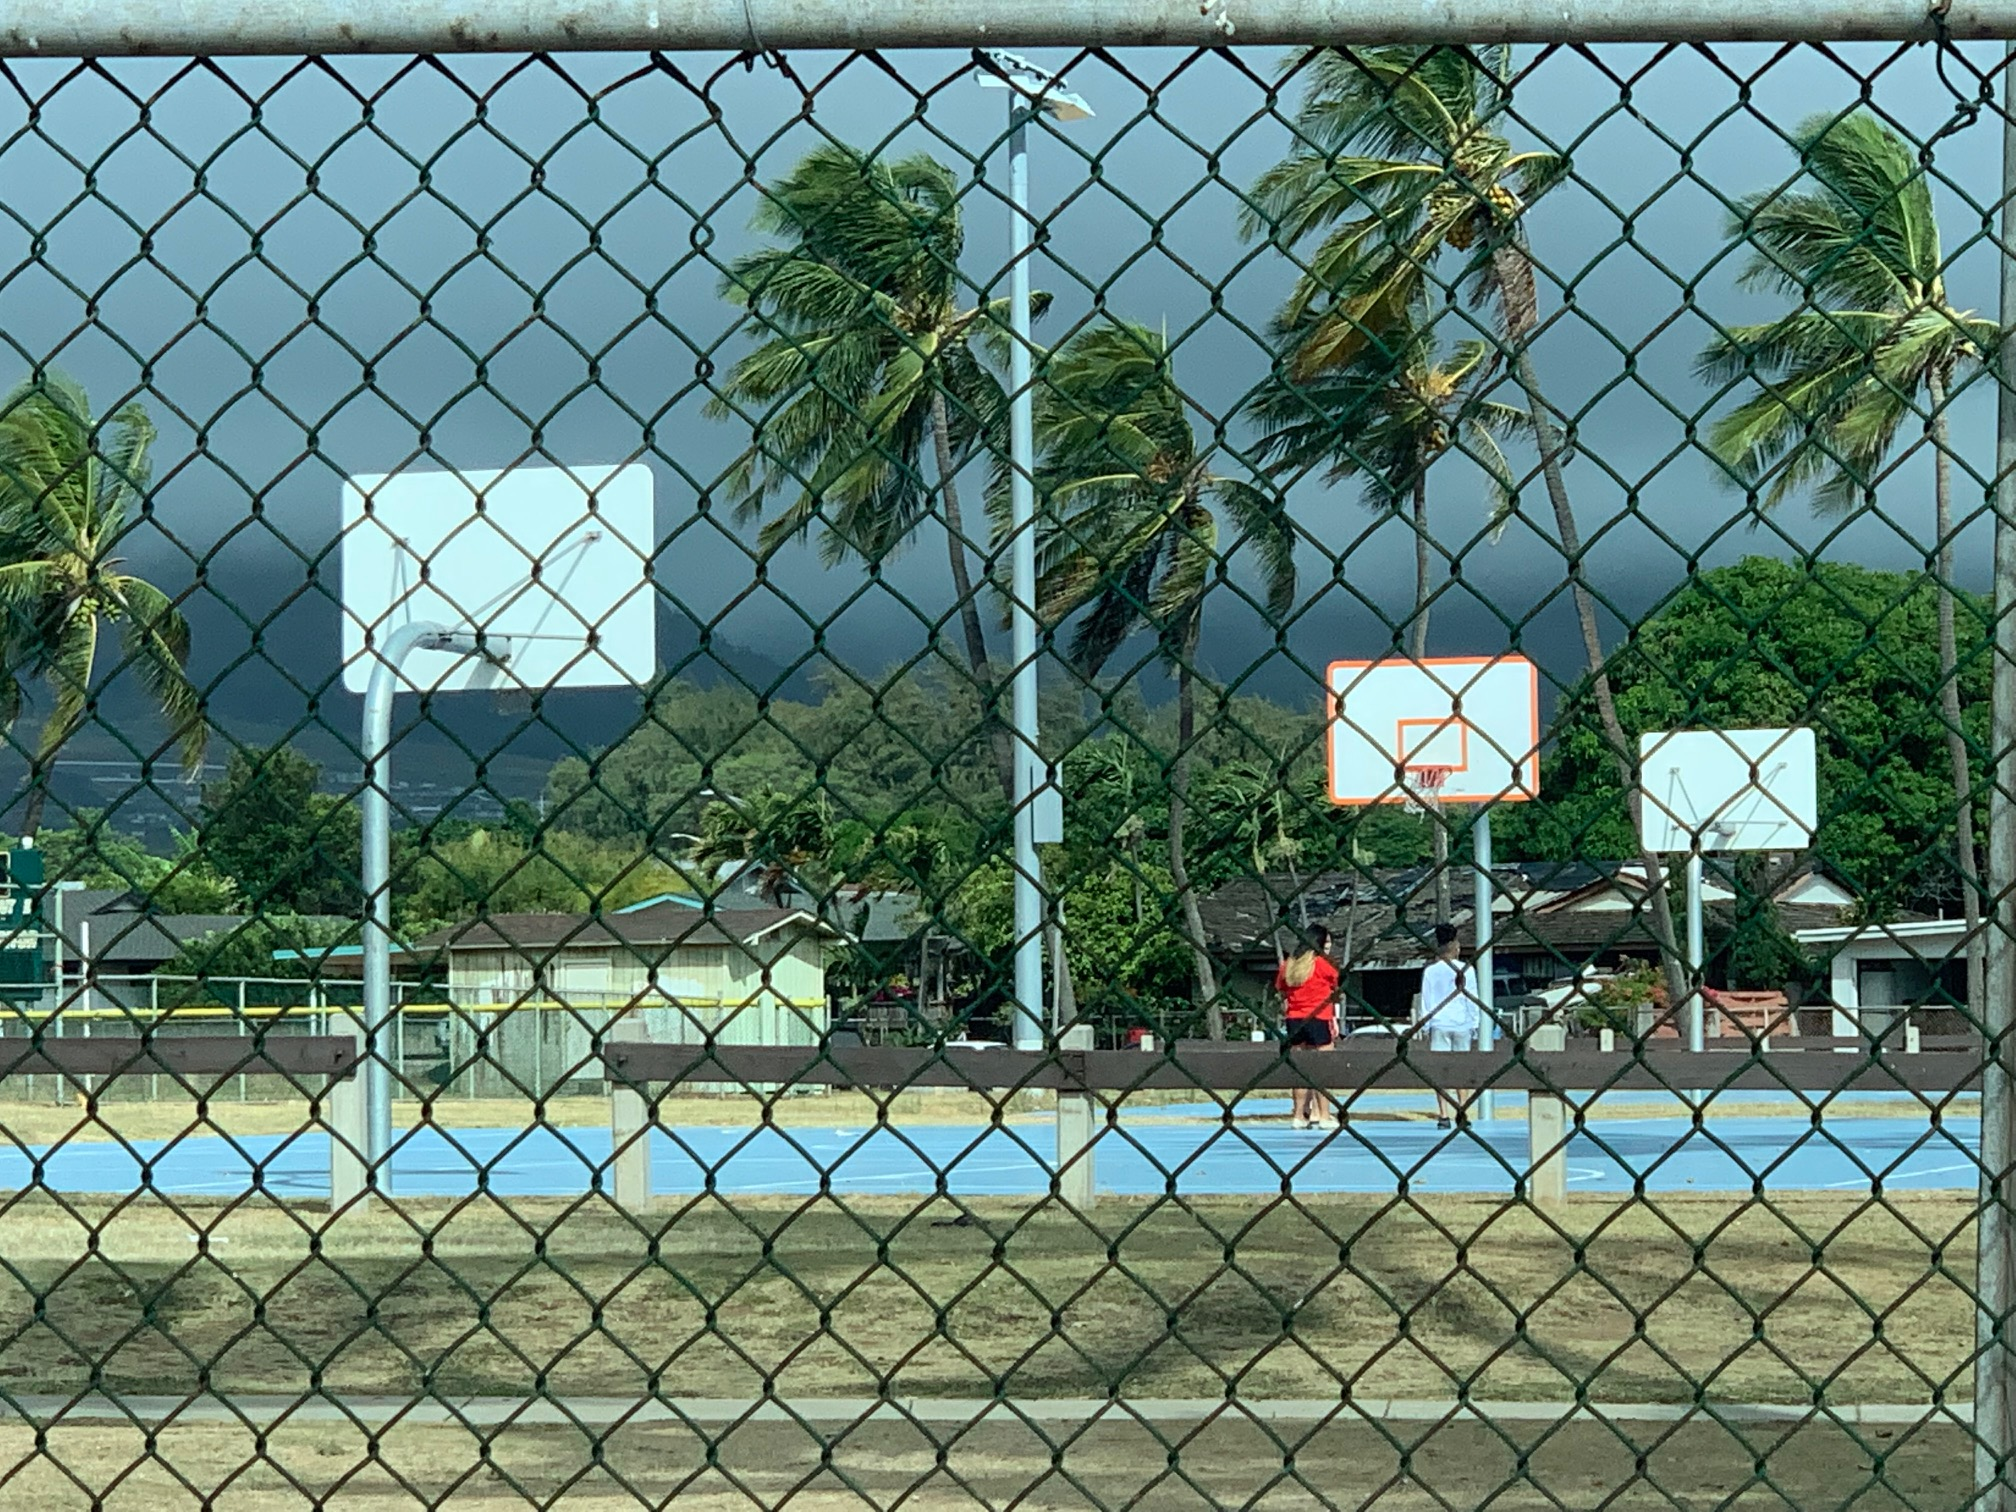 Kahului Outdoor Basketball Courts Eyed for Possible Two Week Closure Amid Complaints